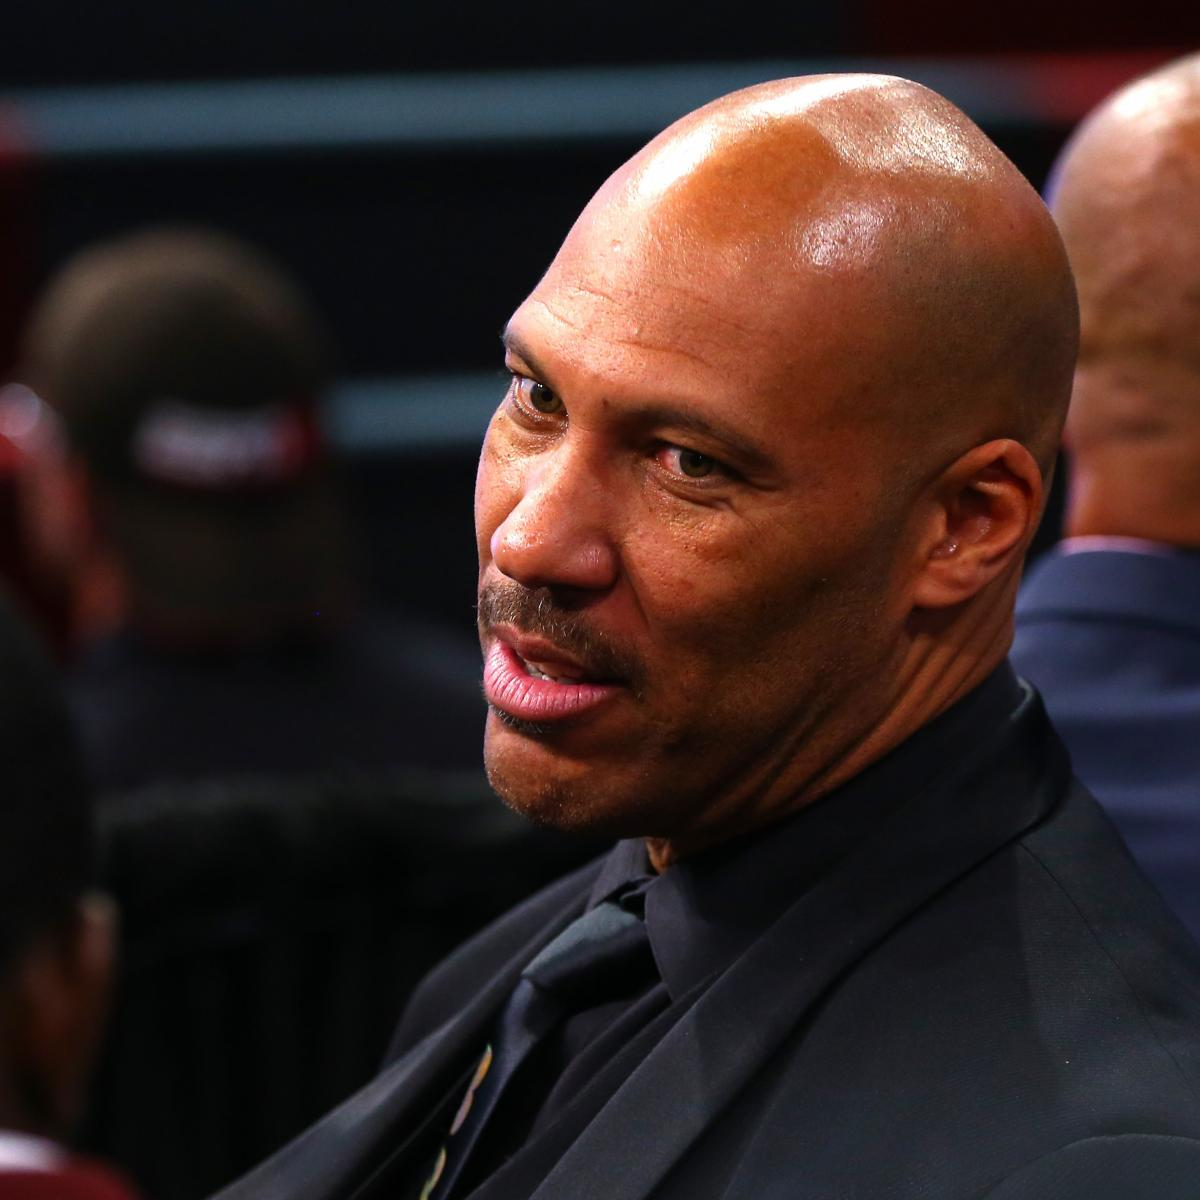 LaVar Ball Reportedly Negotiating Appearance on WWE Raw